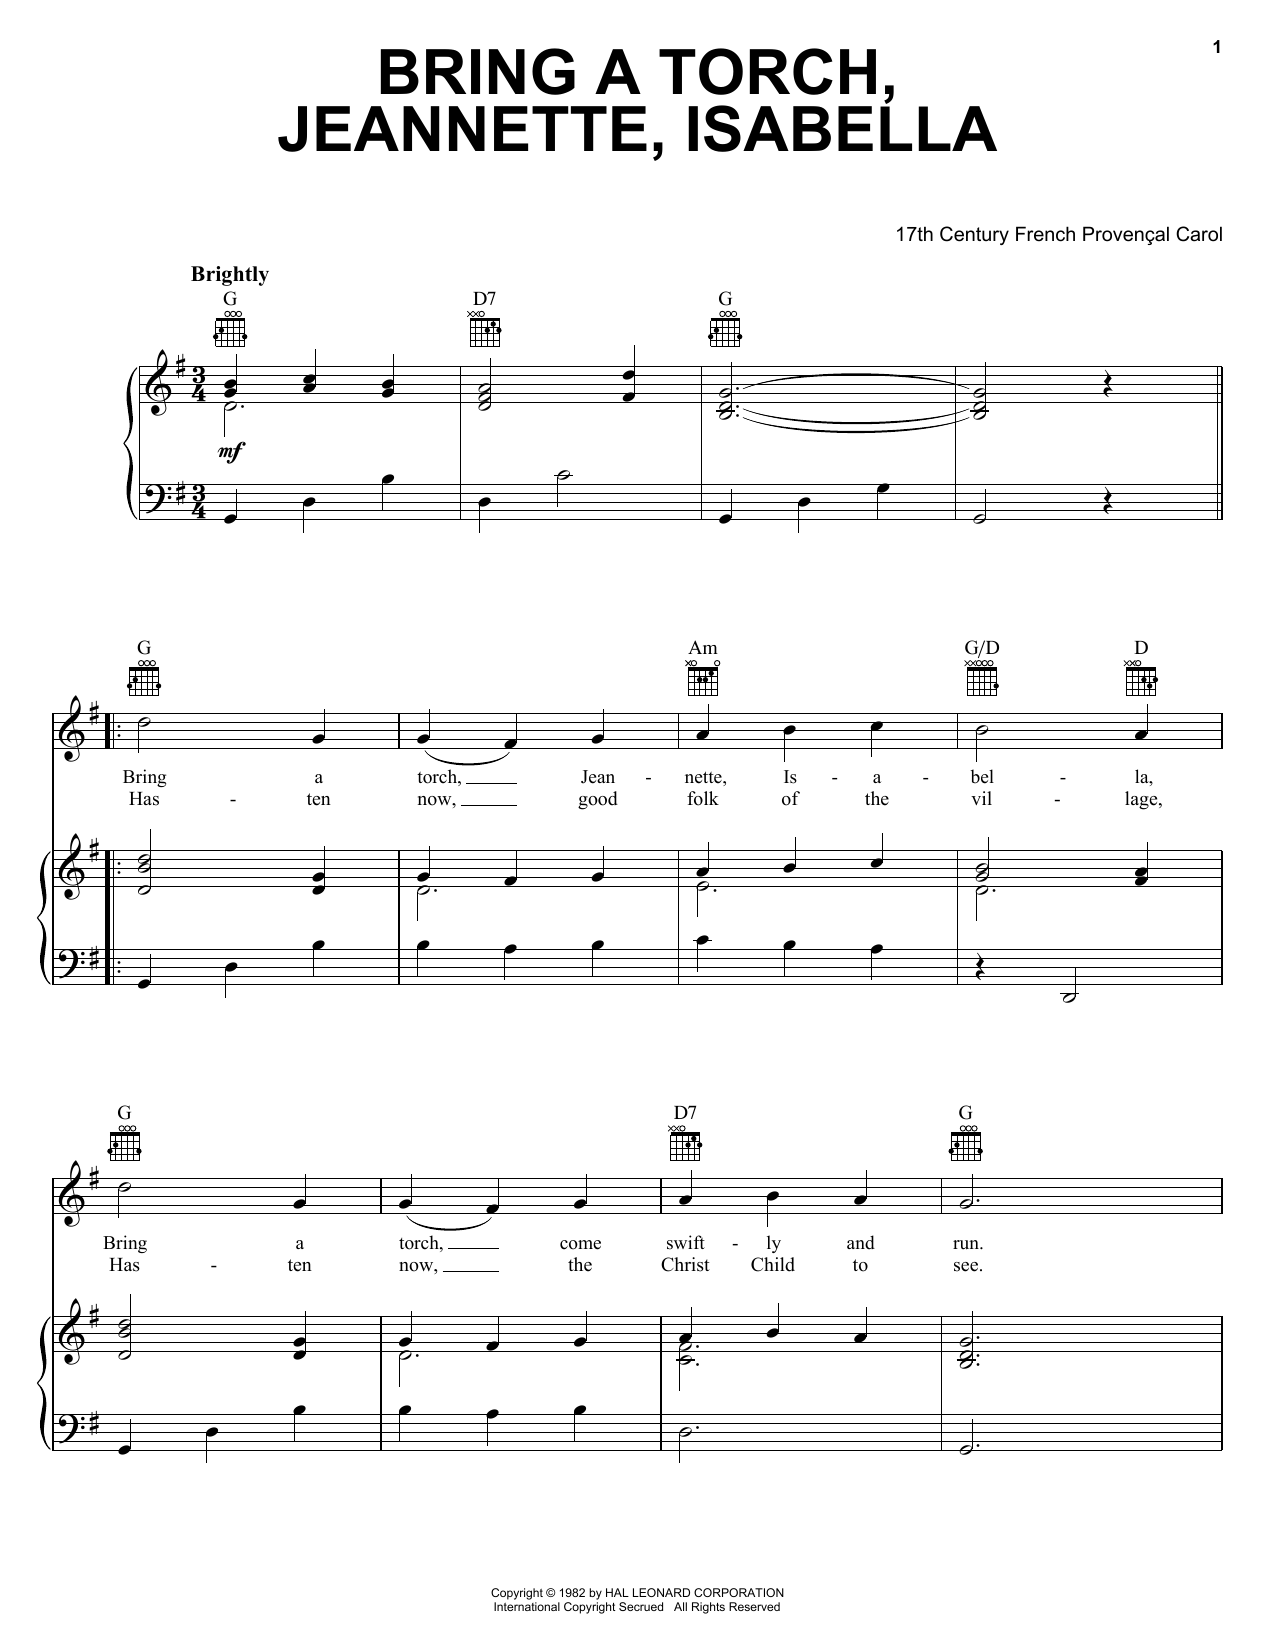 Download Traditional Carol 'Bring A Torch, Jeannette, Isabella' Digital Sheet Music Notes & Chords and start playing in minutes